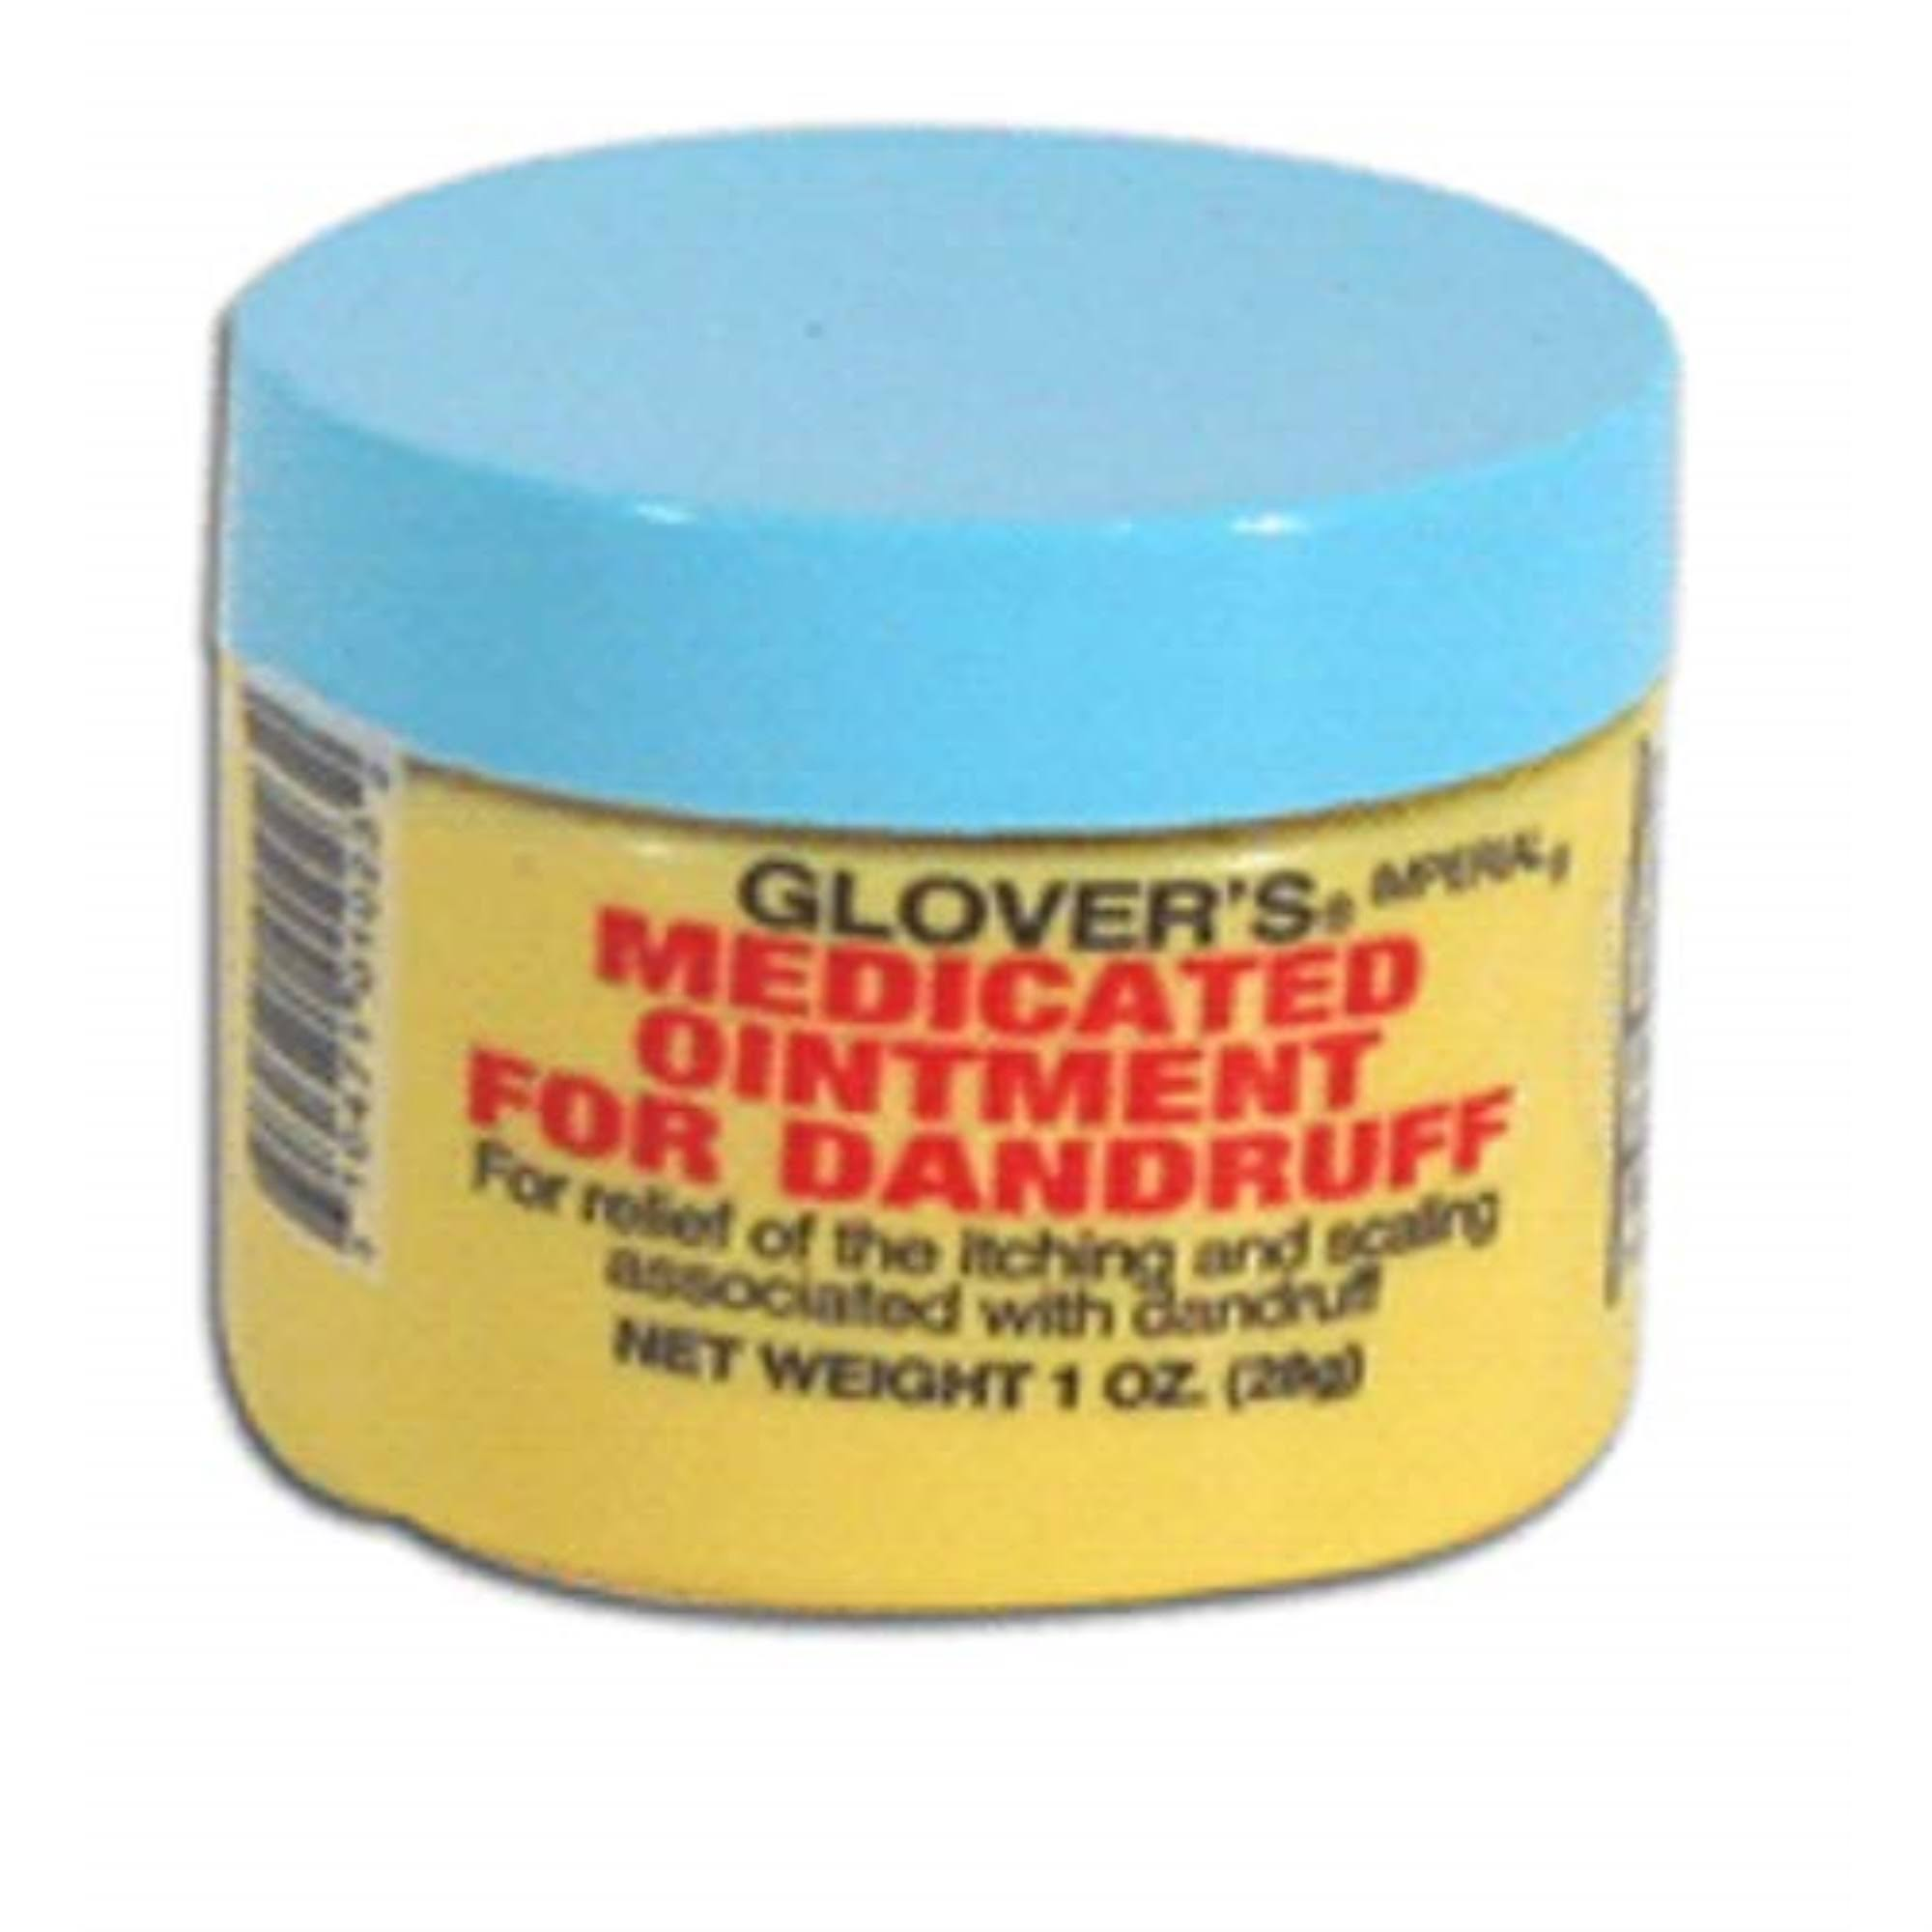 Glovers Medicated Ointment - For Dandruff, 1oz